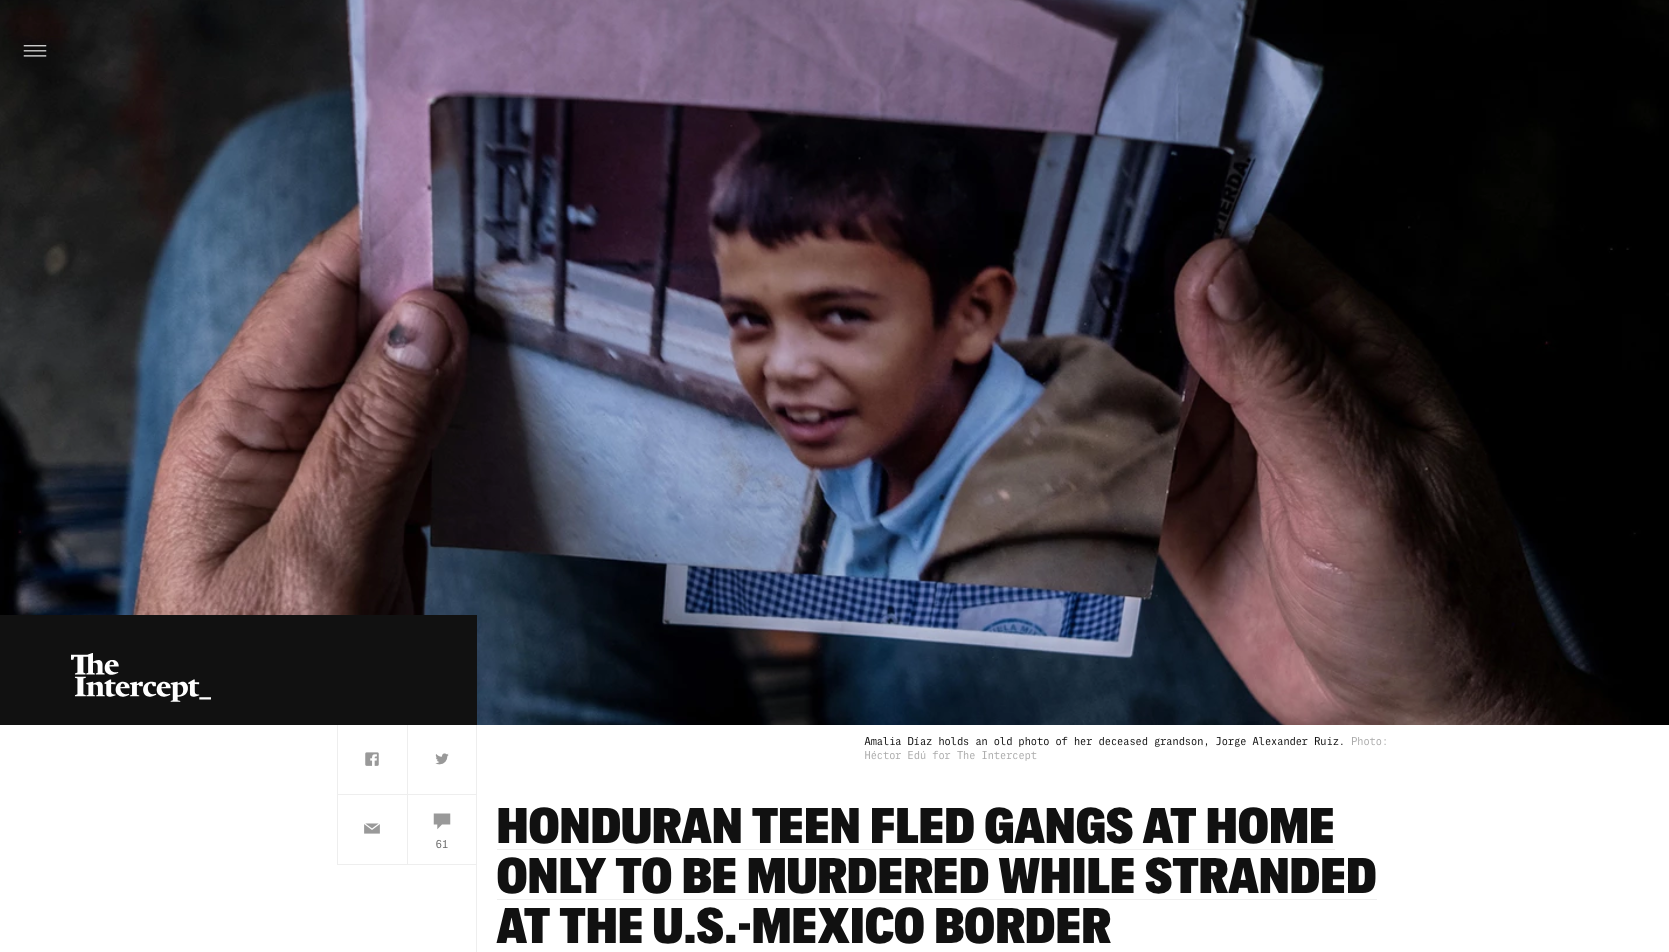 Photography: Héctor Edú  Photo Editing: Ariel Zambelich  Story:  Honduran Teen Fled Gangs At Home Only To Be Murdered While Stranded At The U.S.-Mexico Border